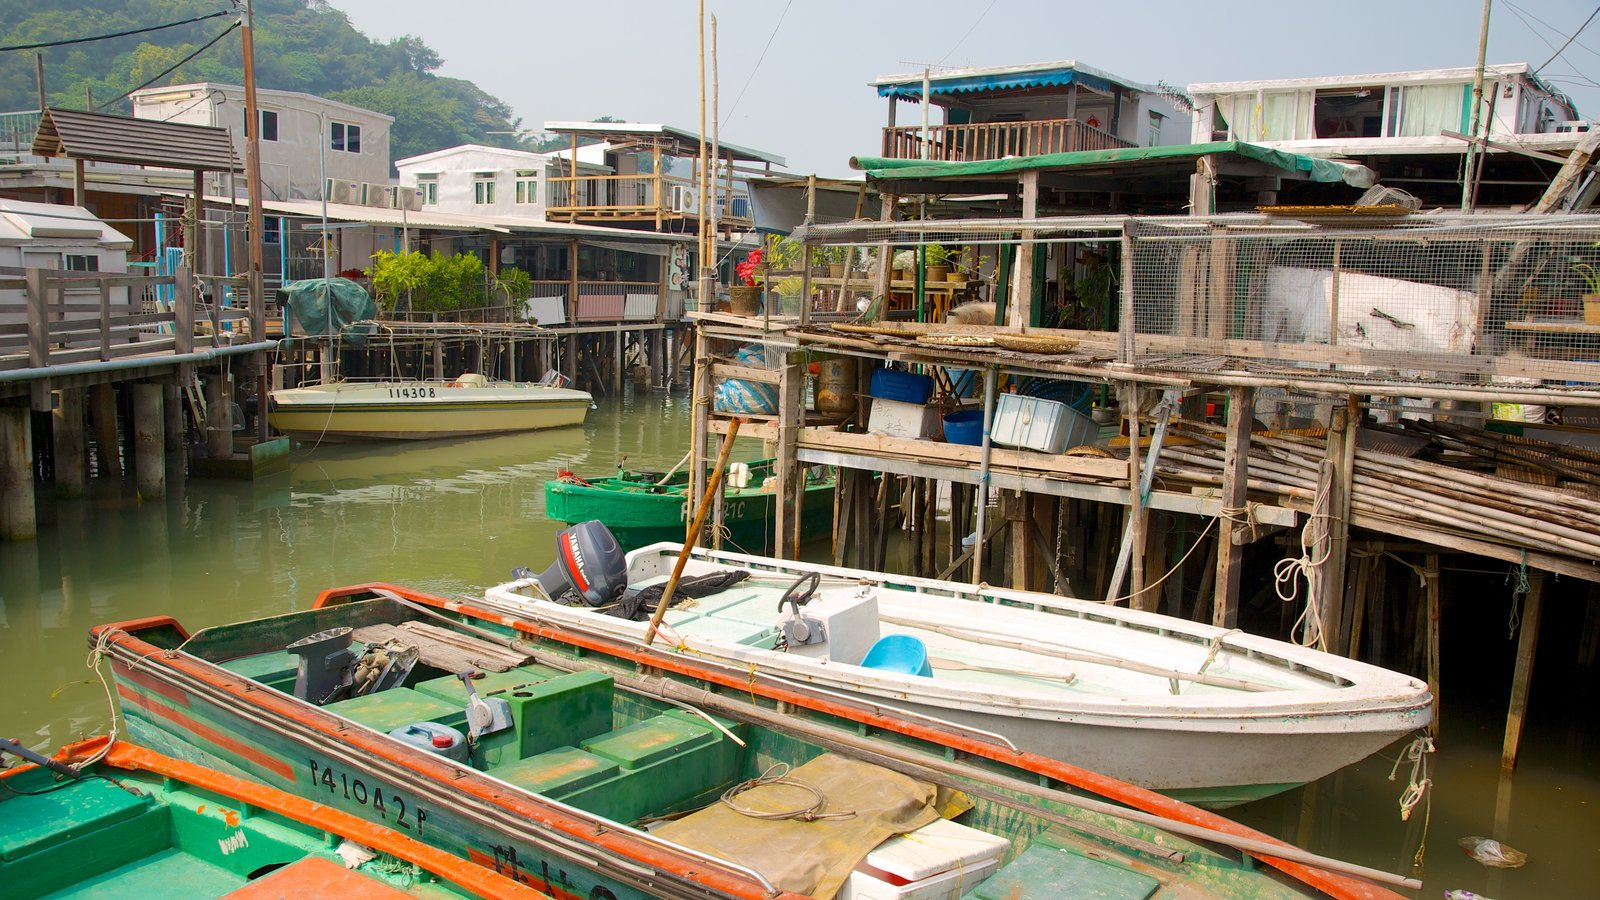 Tai O Fishing Village which includes a river or creek, boating and a house